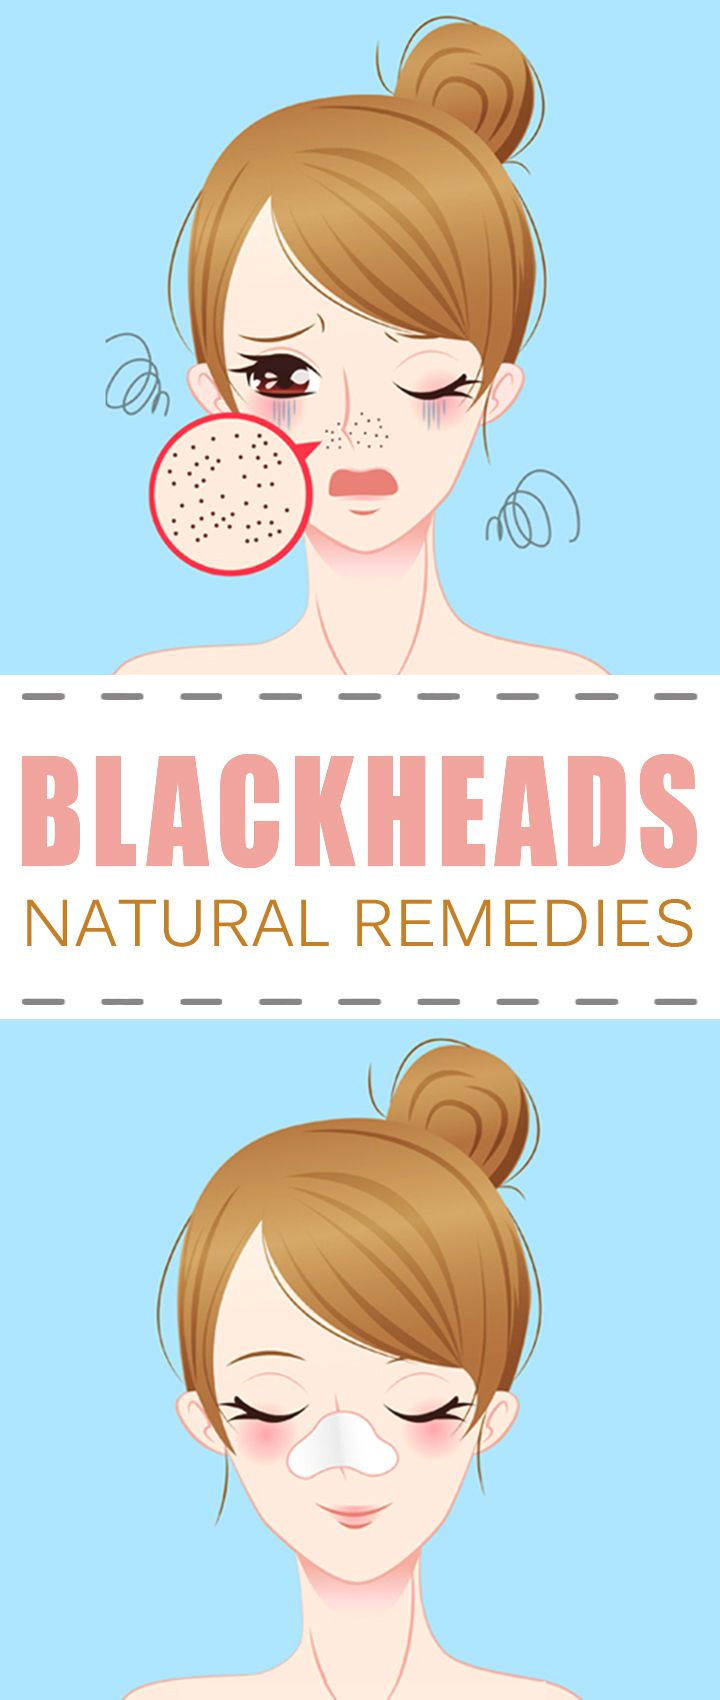 What are Blackheads and How to Treat Them Naturally ? | Healthy Society. blackheads | blackheads removal | blackheads on nose | blackheads removal diy | blackheads entfernen | BlackHeads Mask | BlackHeads Removal Tool |